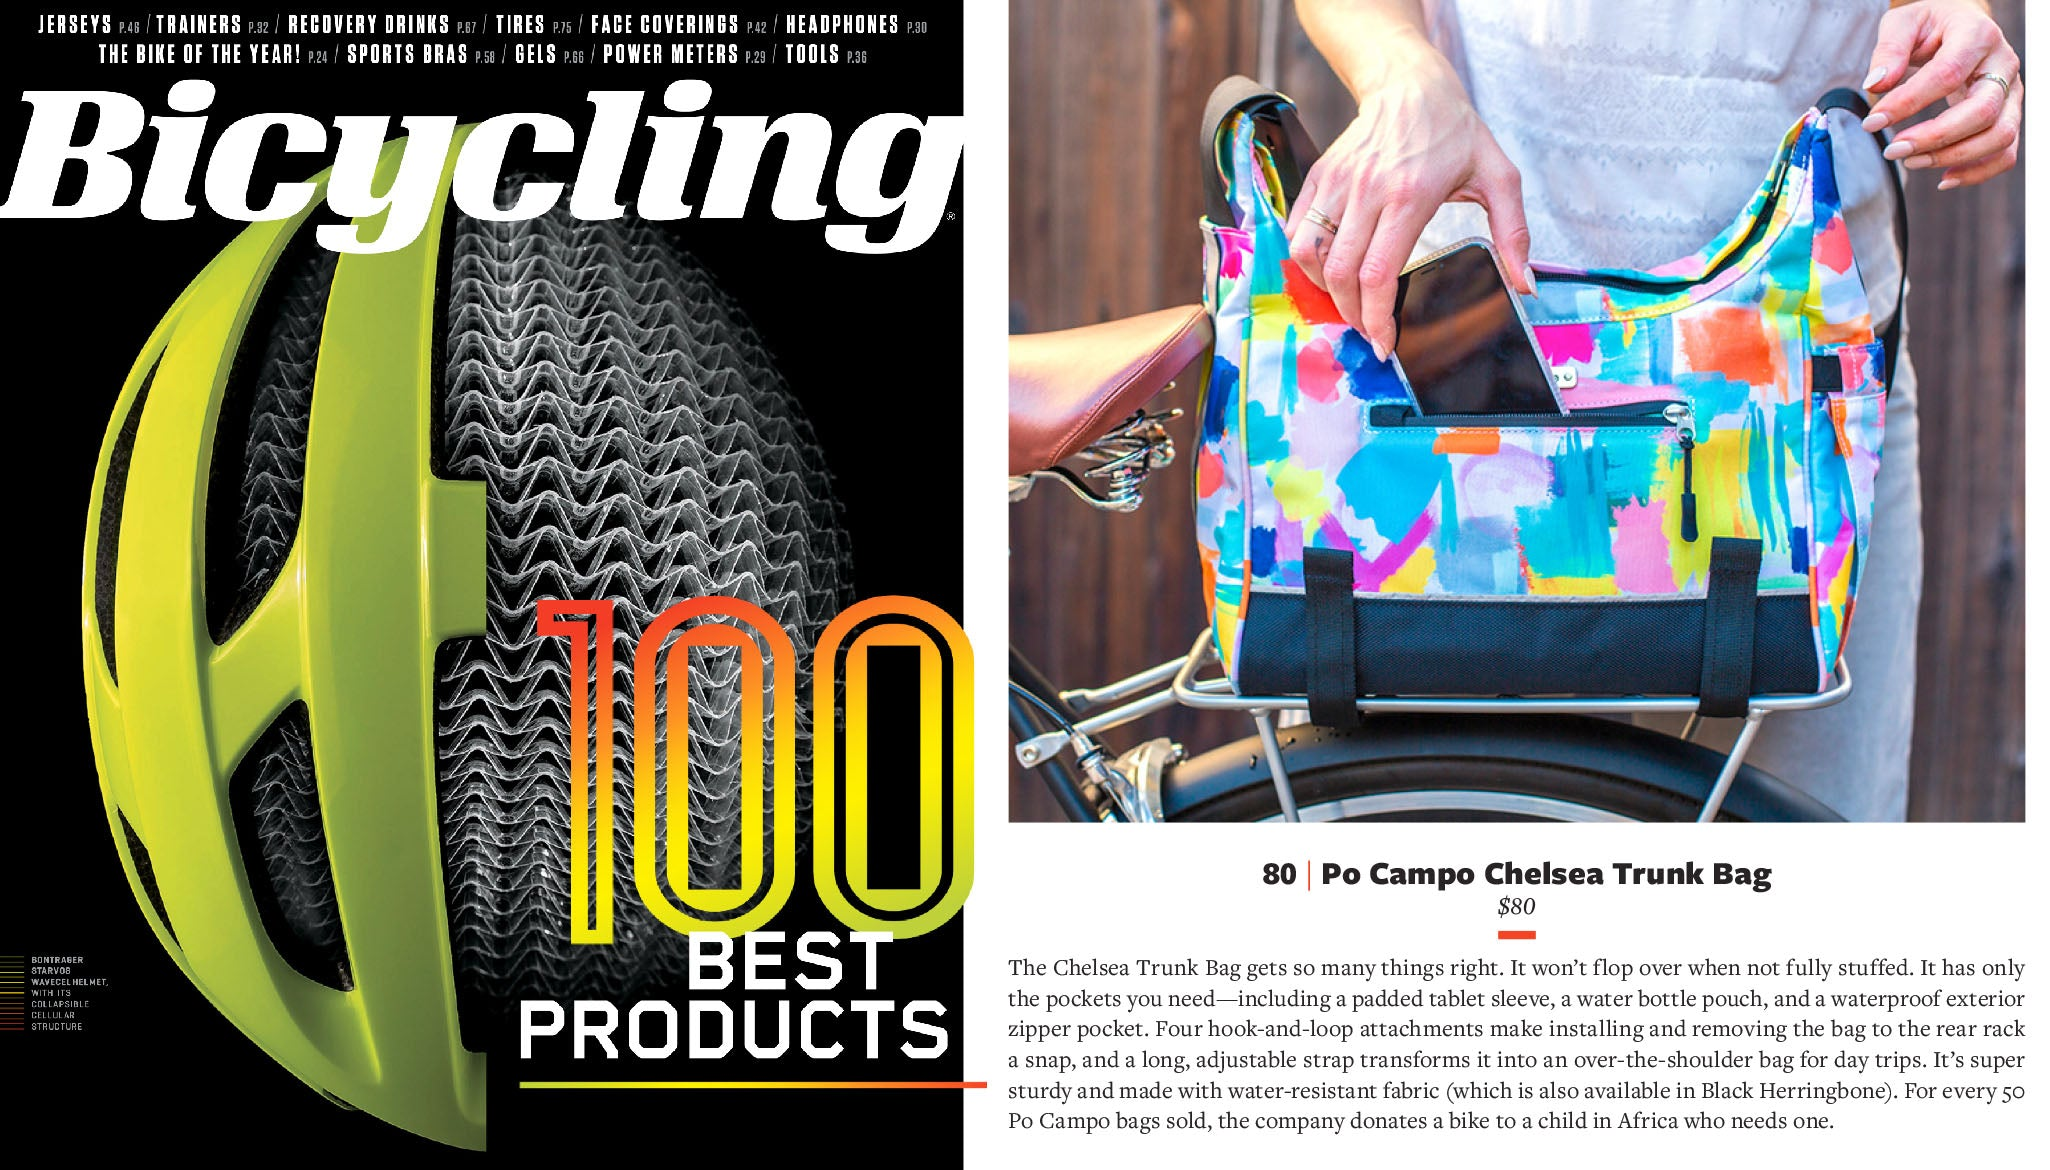 Bicycling Magazine's Top 100 Best Products